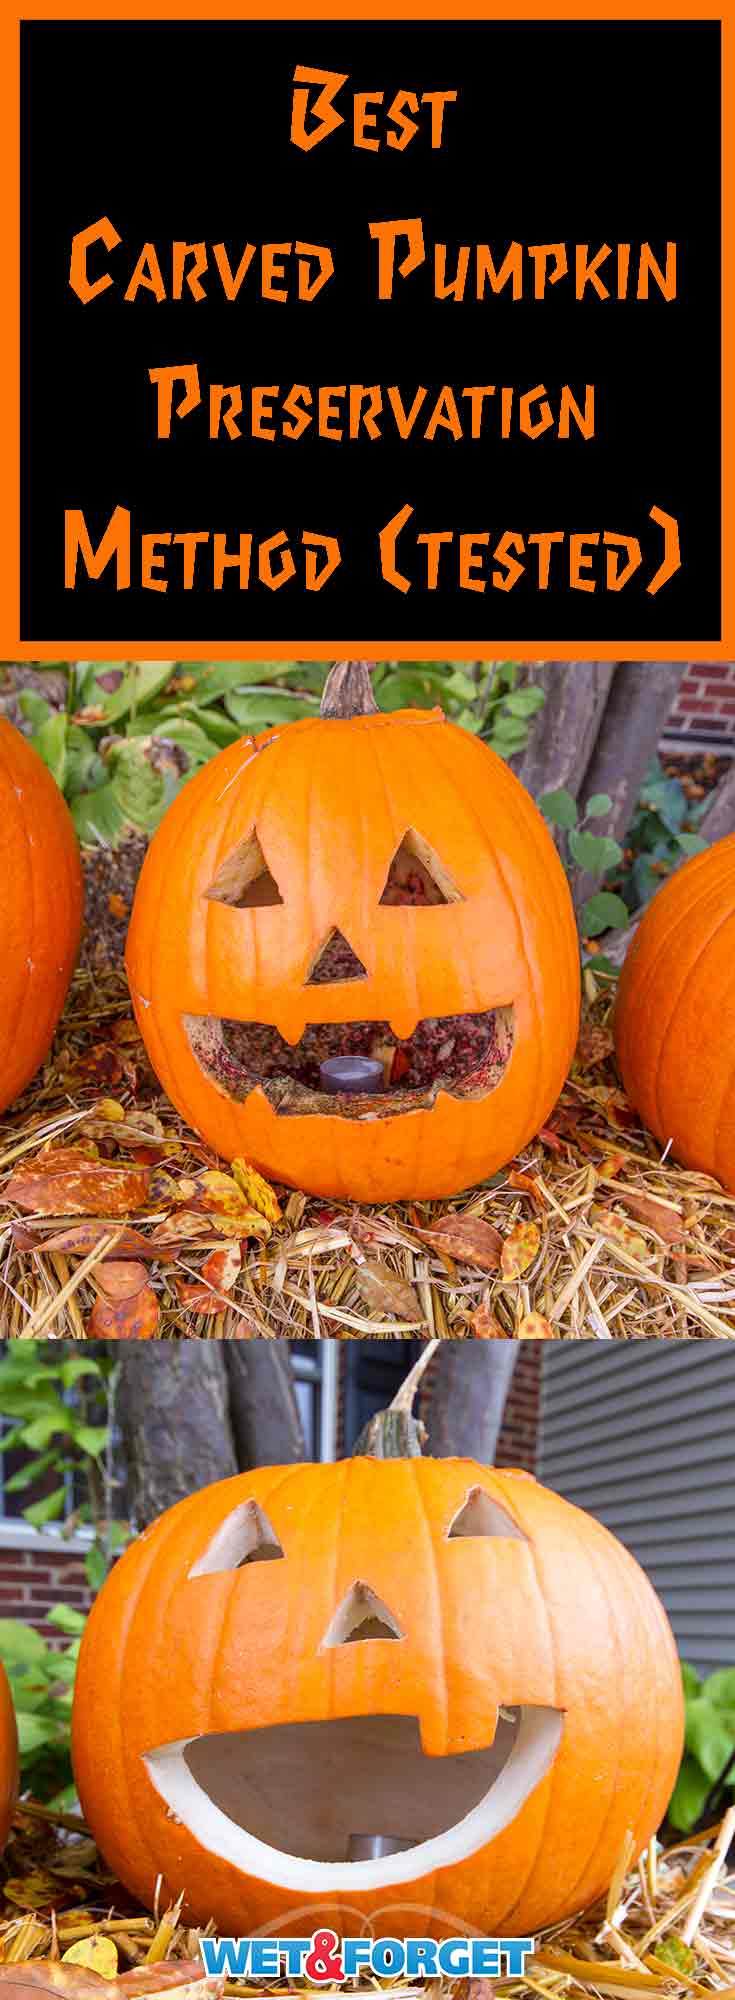 Don't let your carved pumpkins wither or turn black. Keep your jack-o-lantern for a few more weeks with this carved pumpkin preservation method!